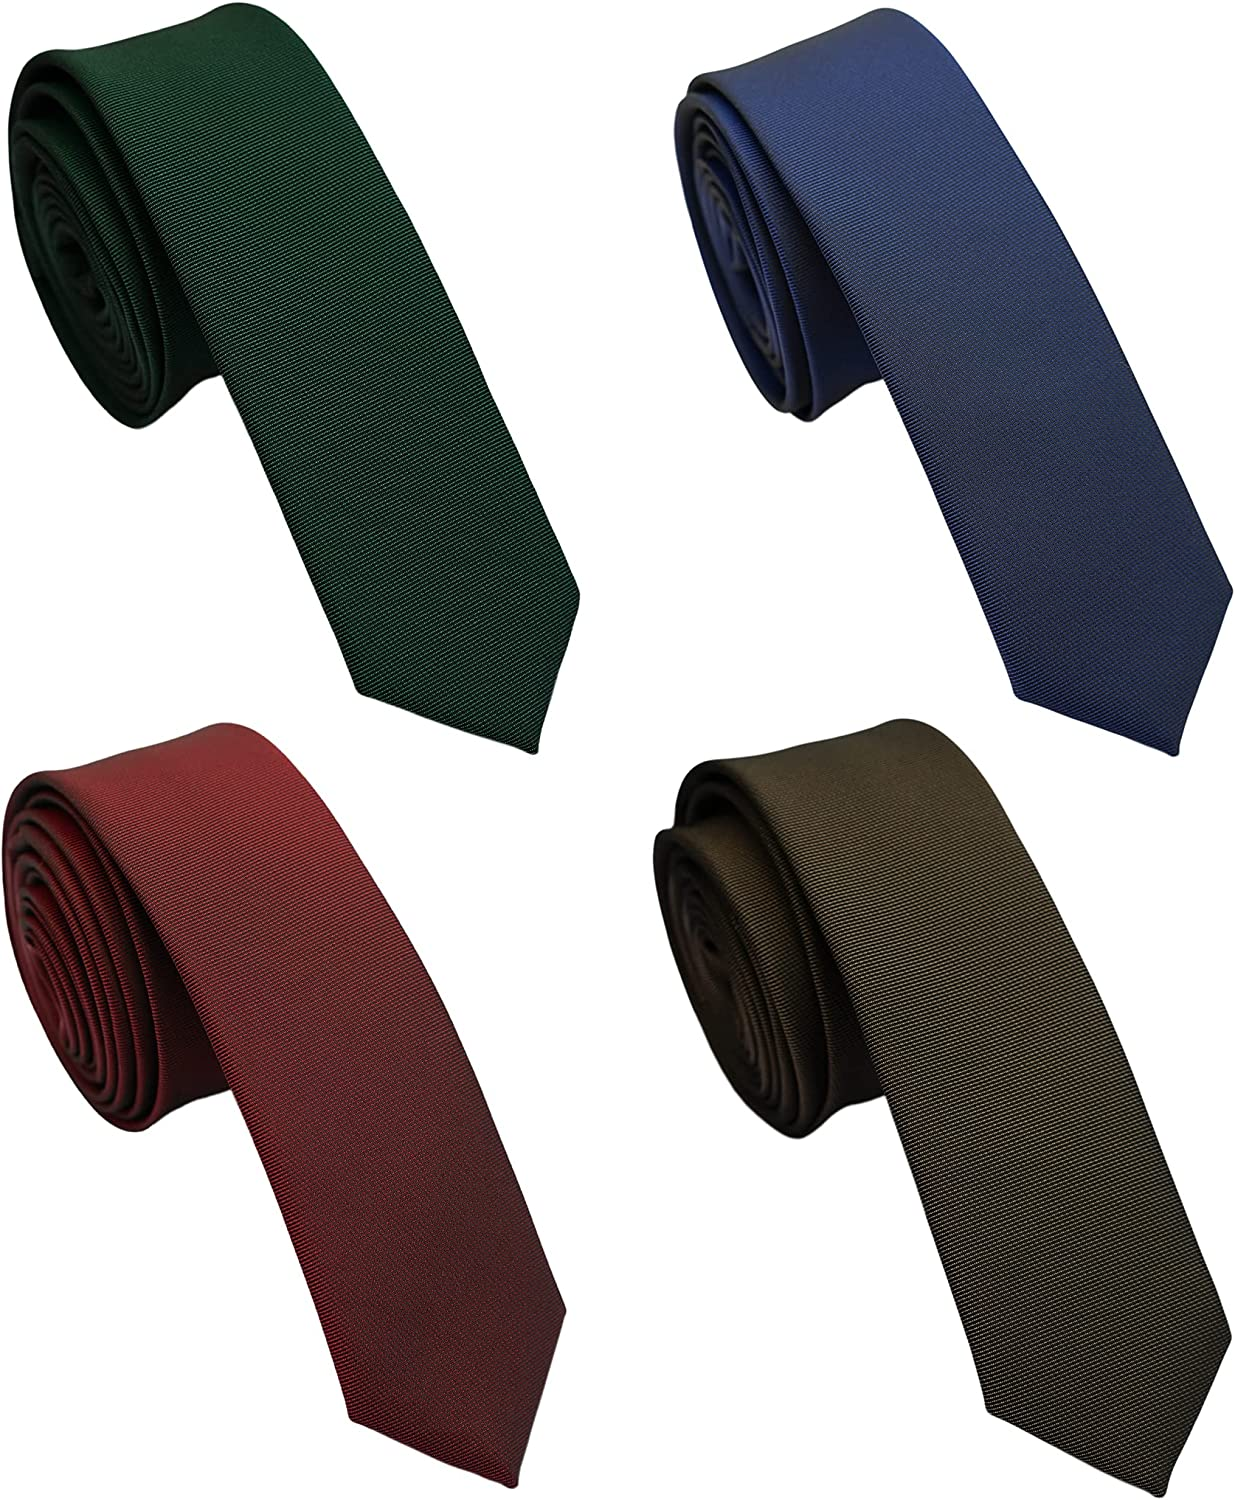 Extra Long Solid Skinny Ties for Men 4-Pack, 2 inch Slim and Thin Neckties, 63 inch Long XL Ties for Men Big and Tall